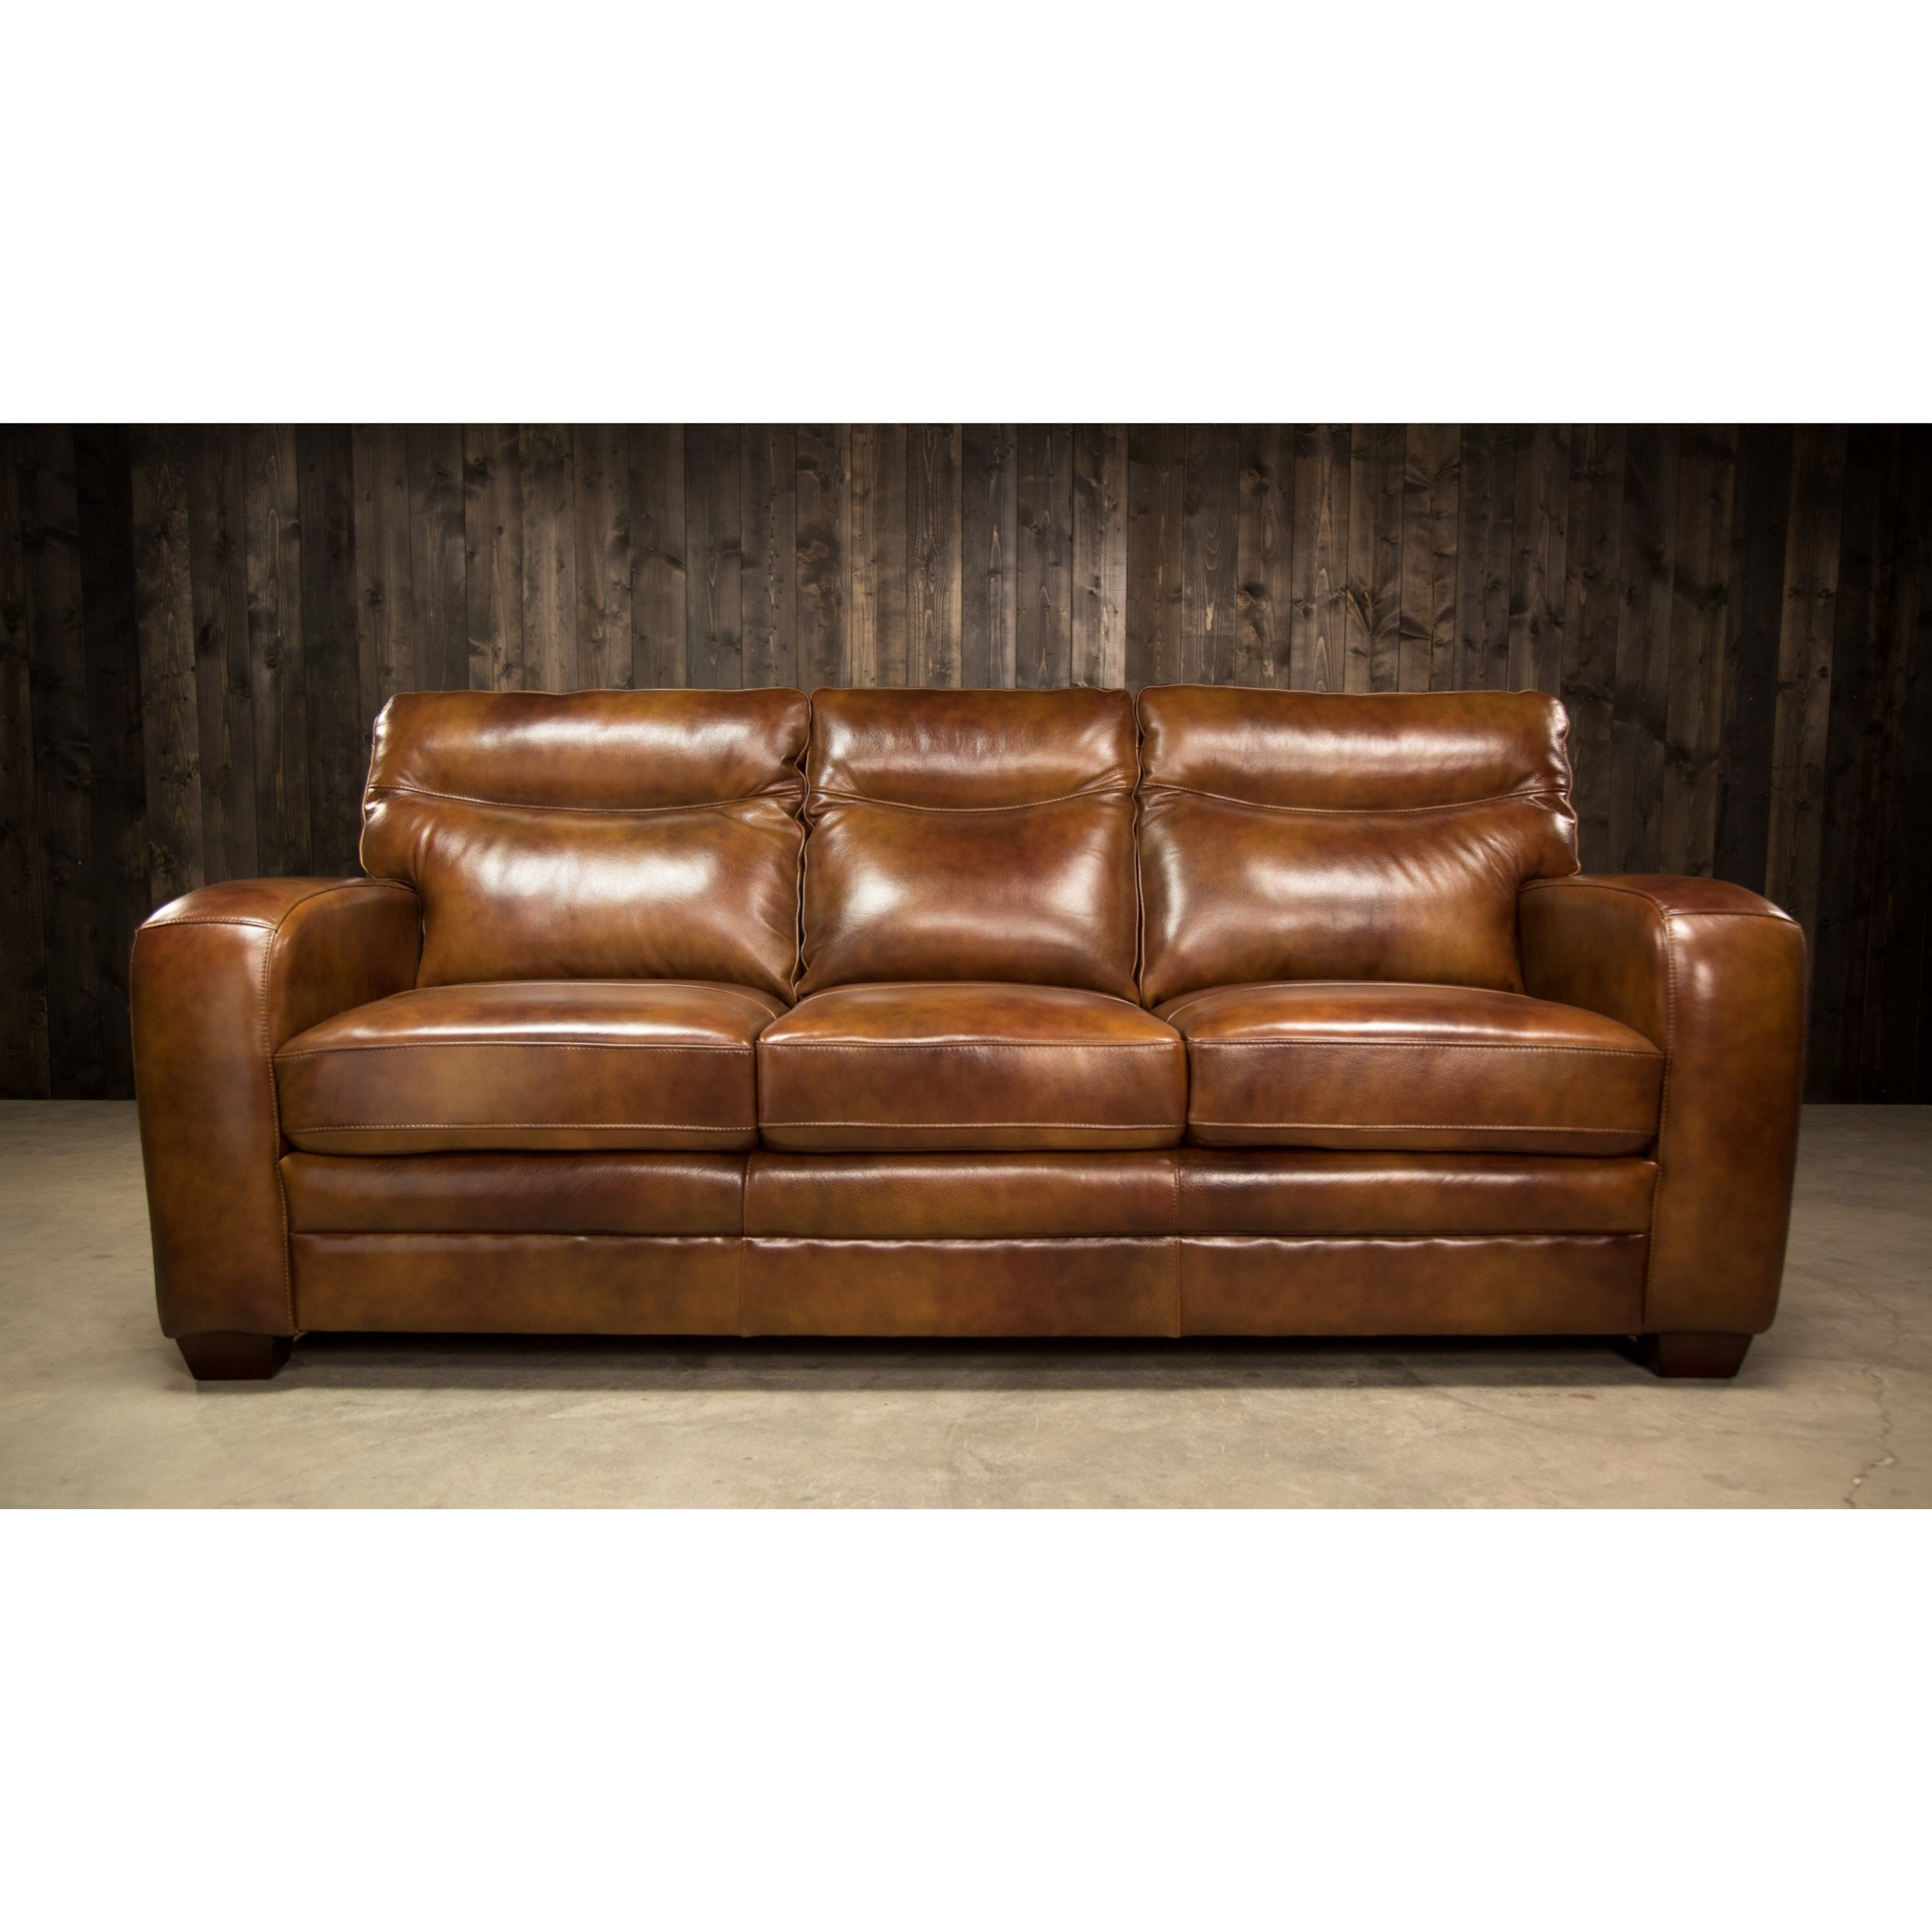 Elements International Montebello Leather Sofa With Low Profile Arms   Royal  Furniture   Sofas